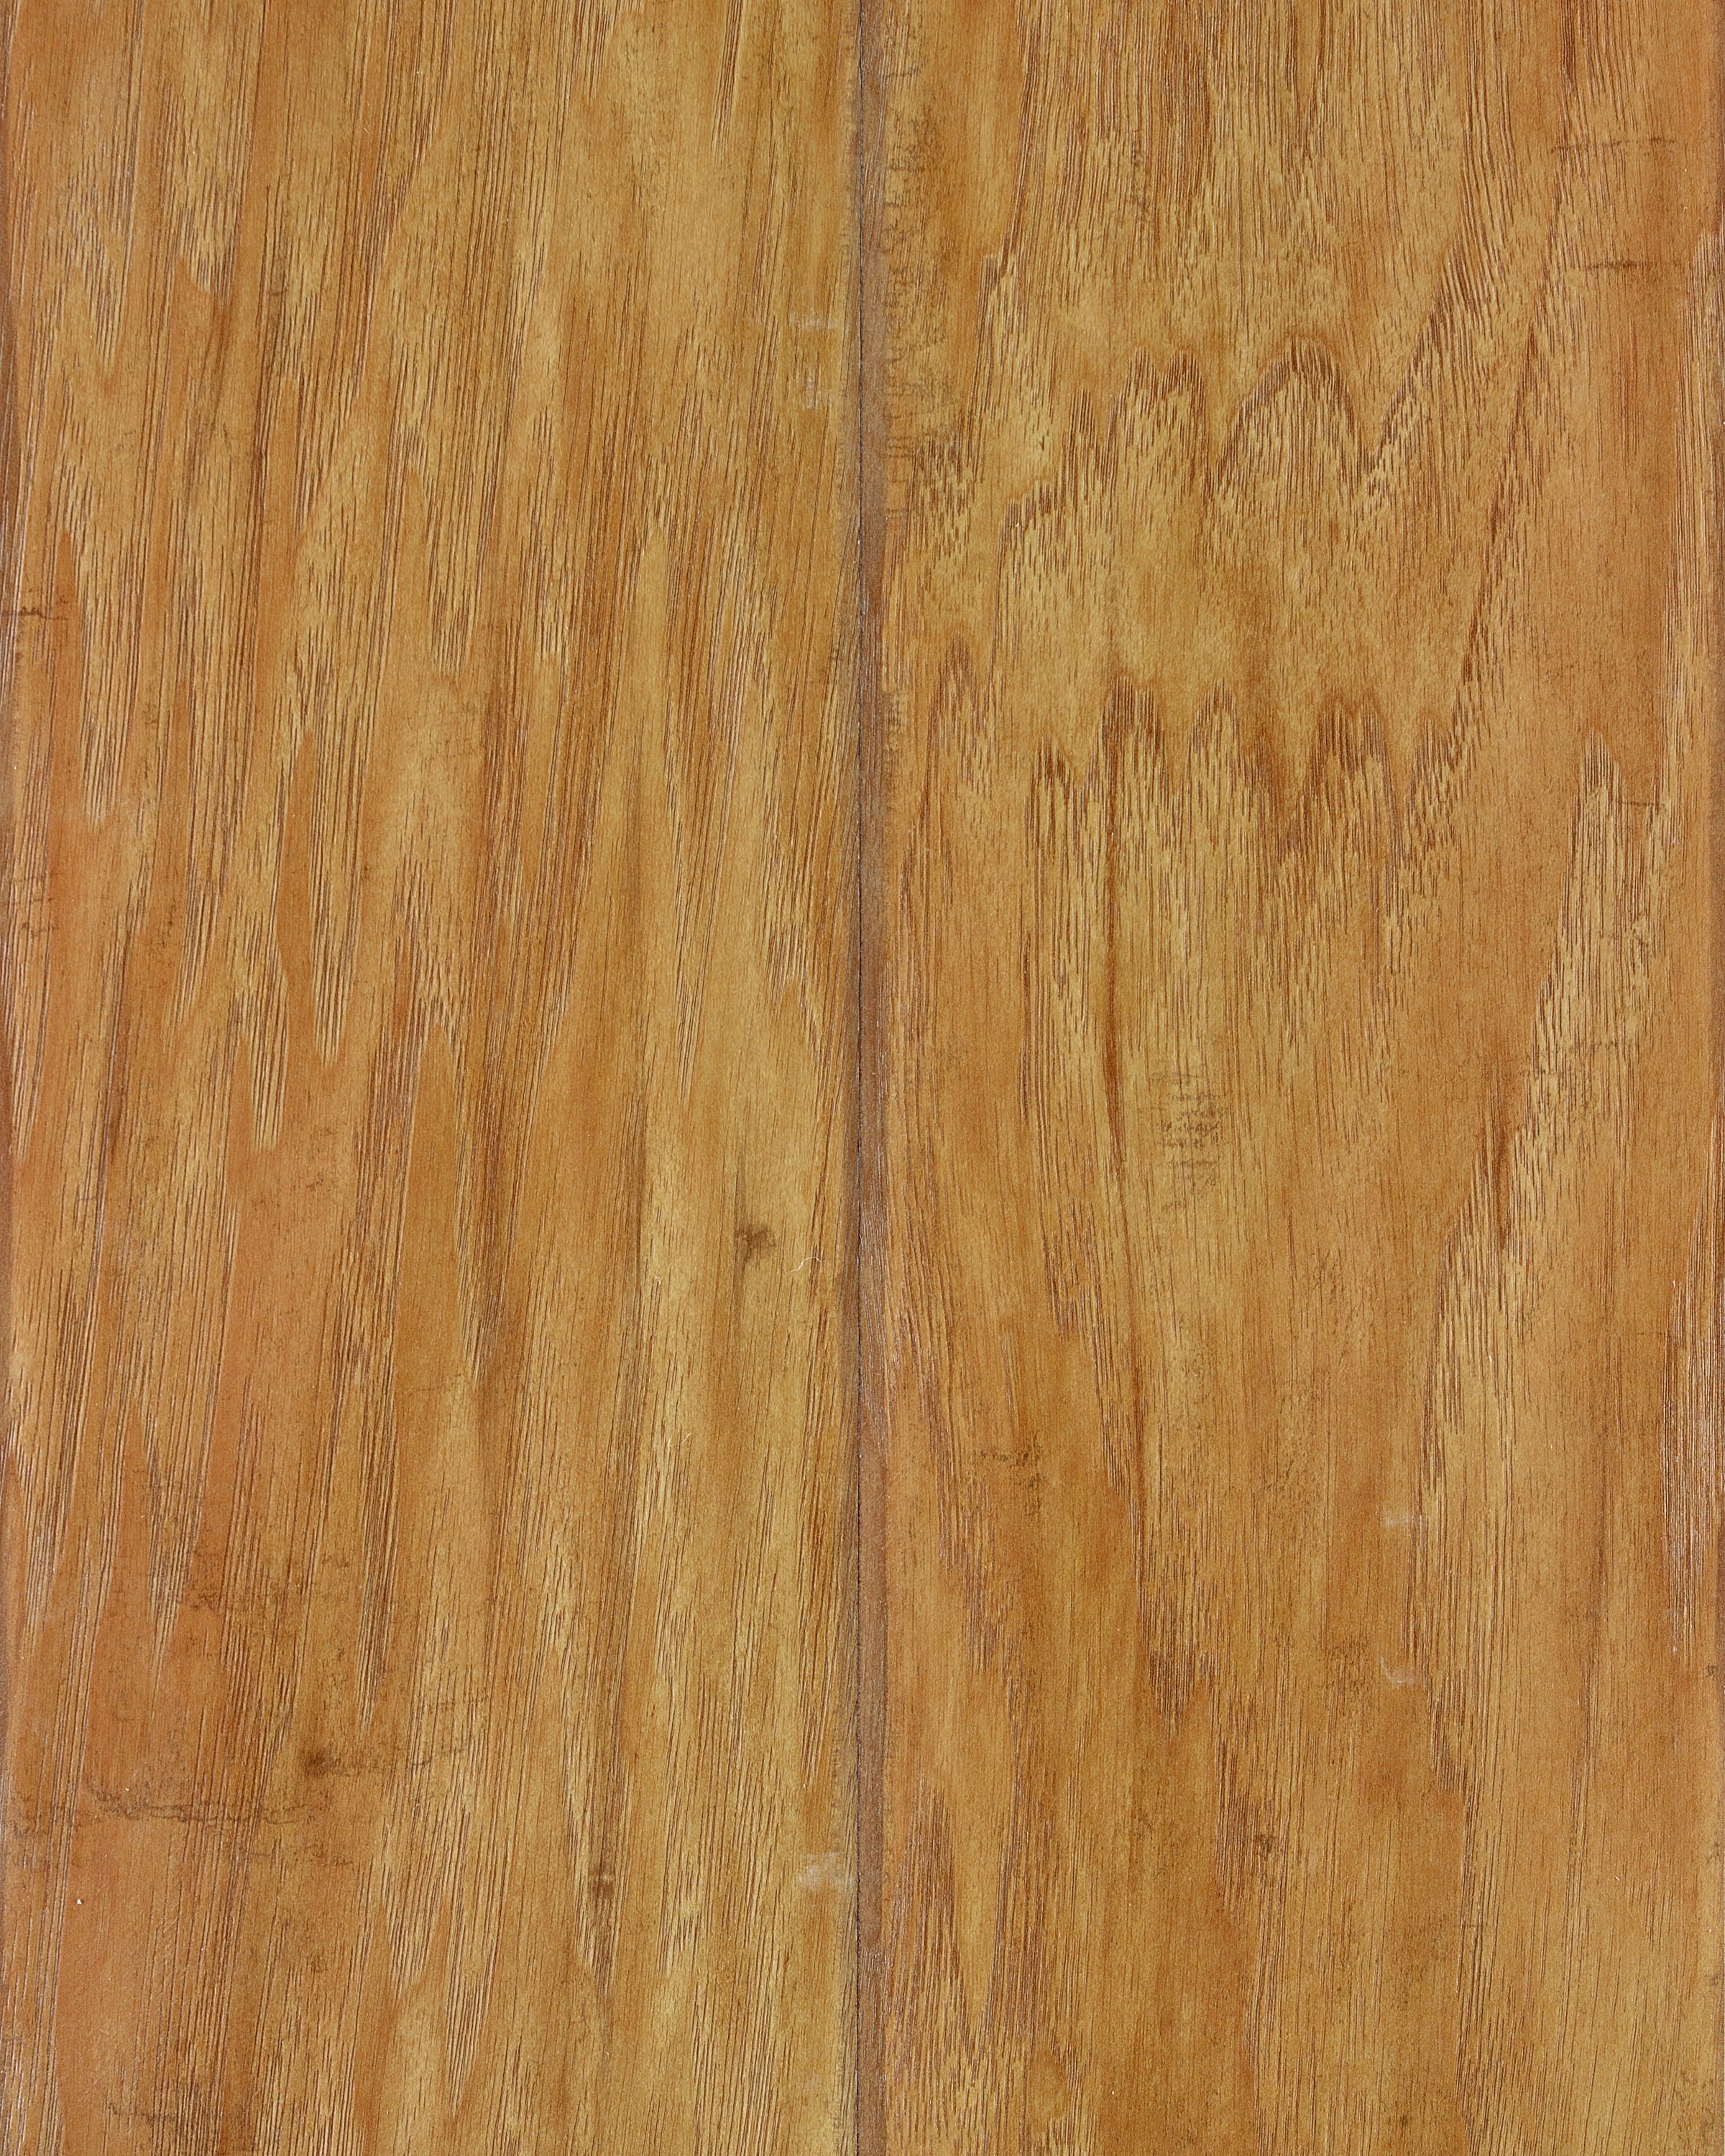 flooring sf natural laminate wide hardwood floor planks ha pecan handscraped industries carton mohawk